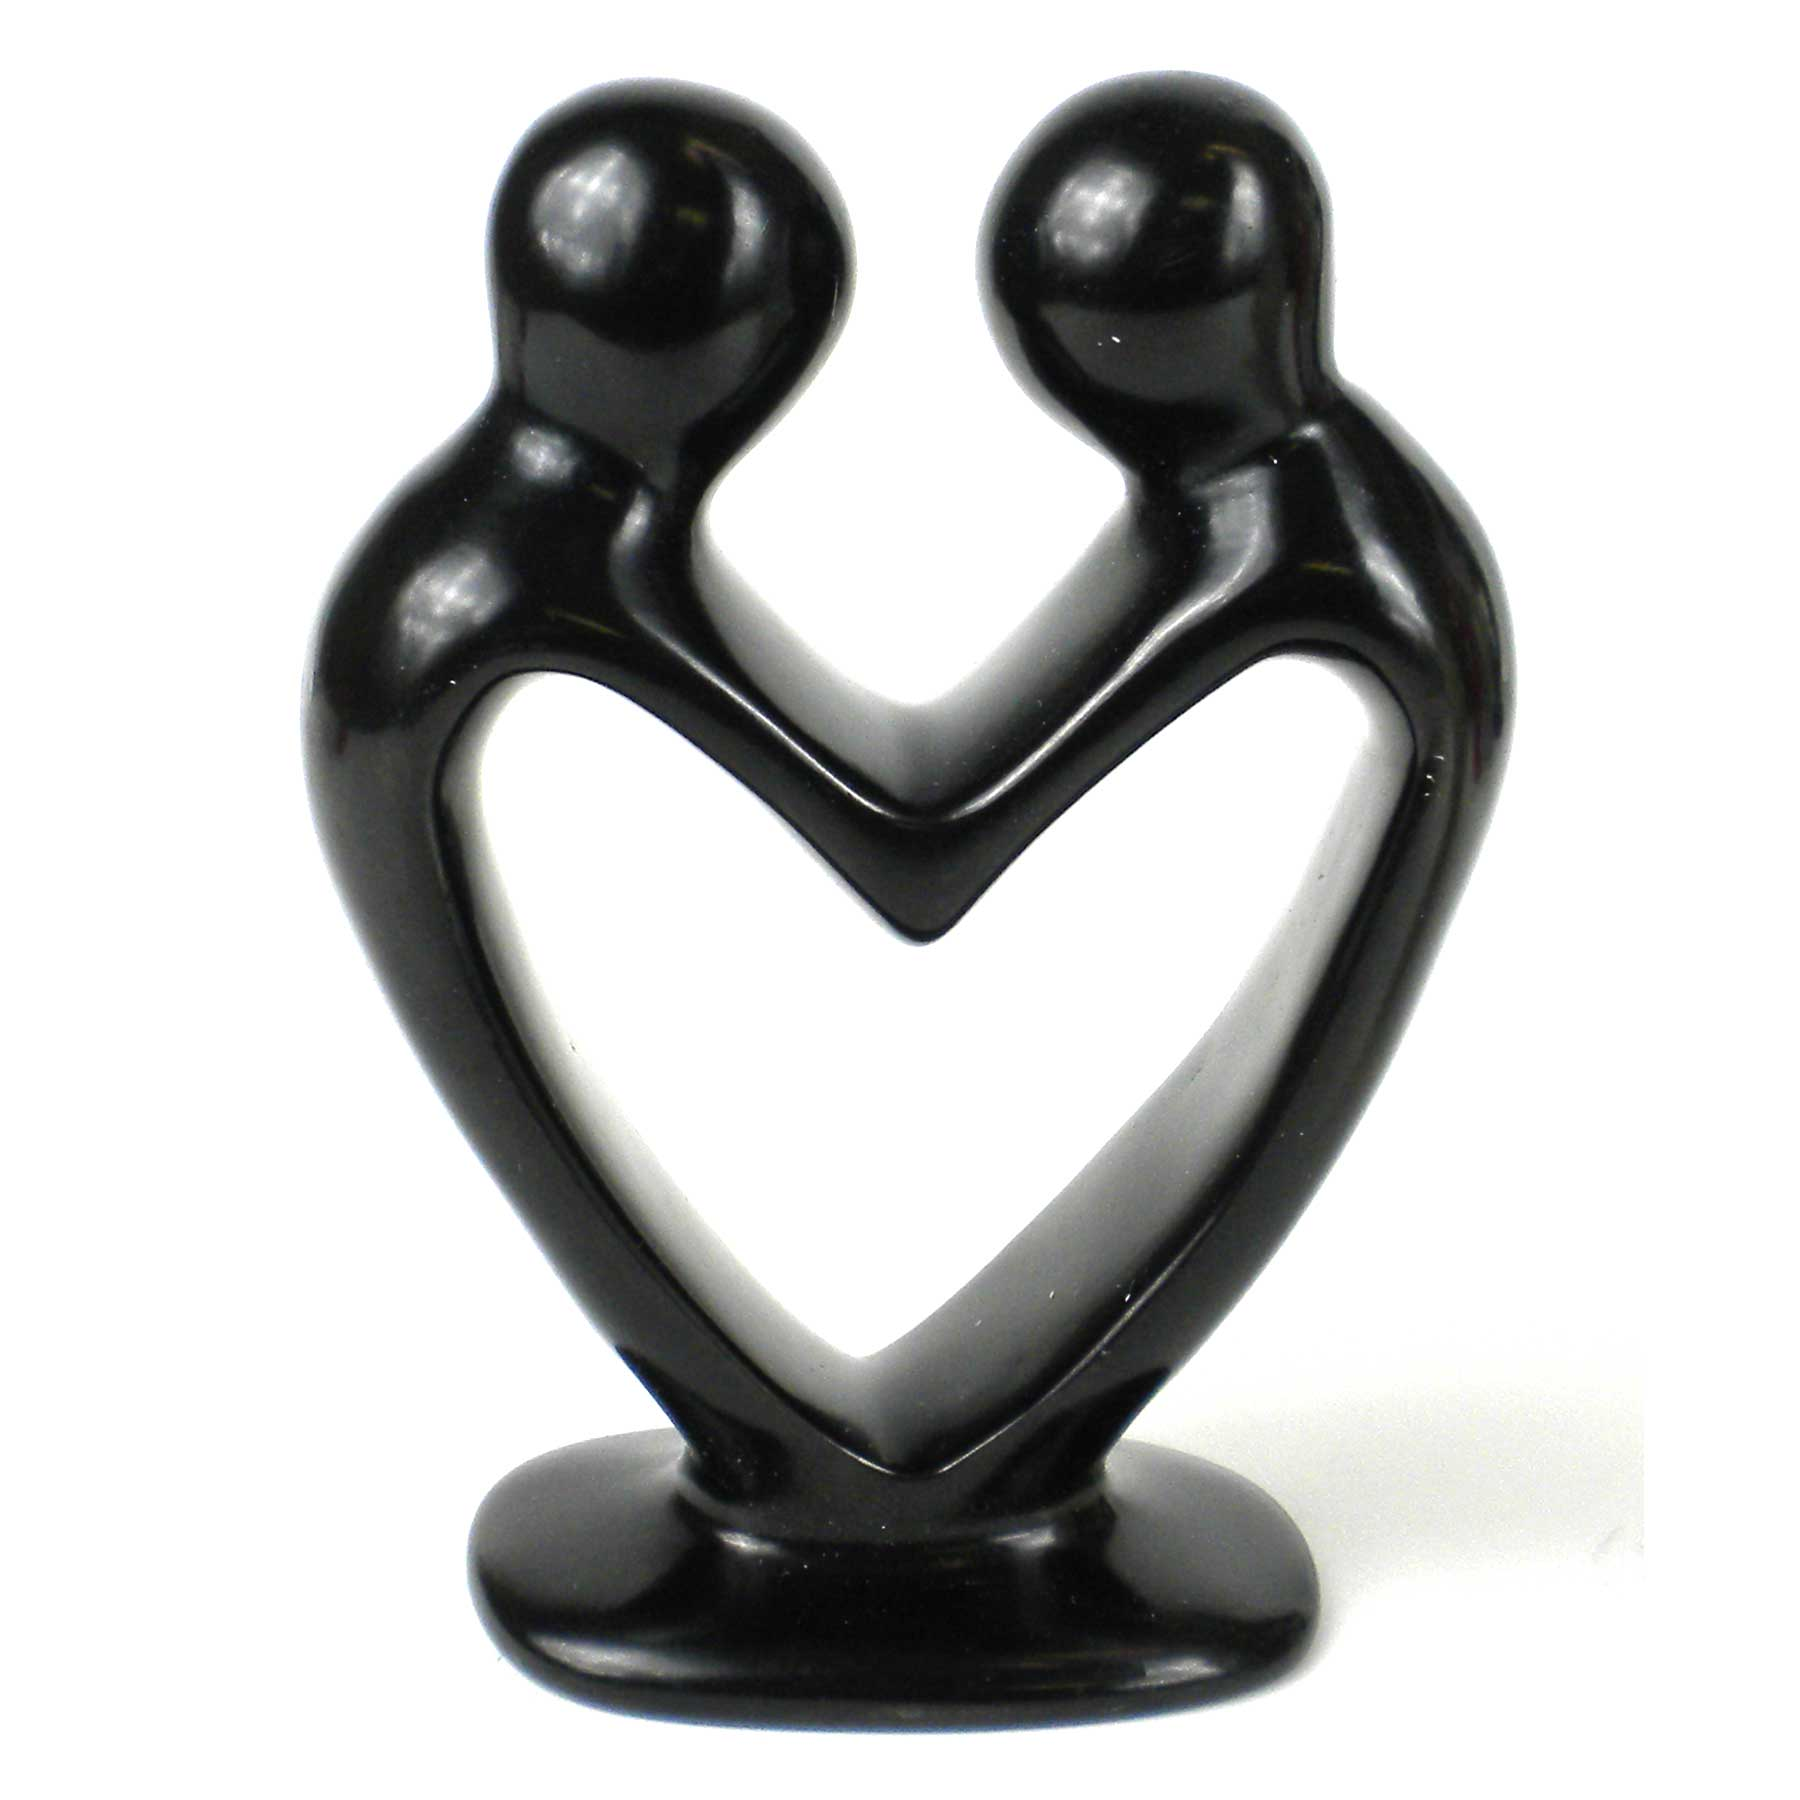 Soapstone Lovers Heart Black - 6 Inch